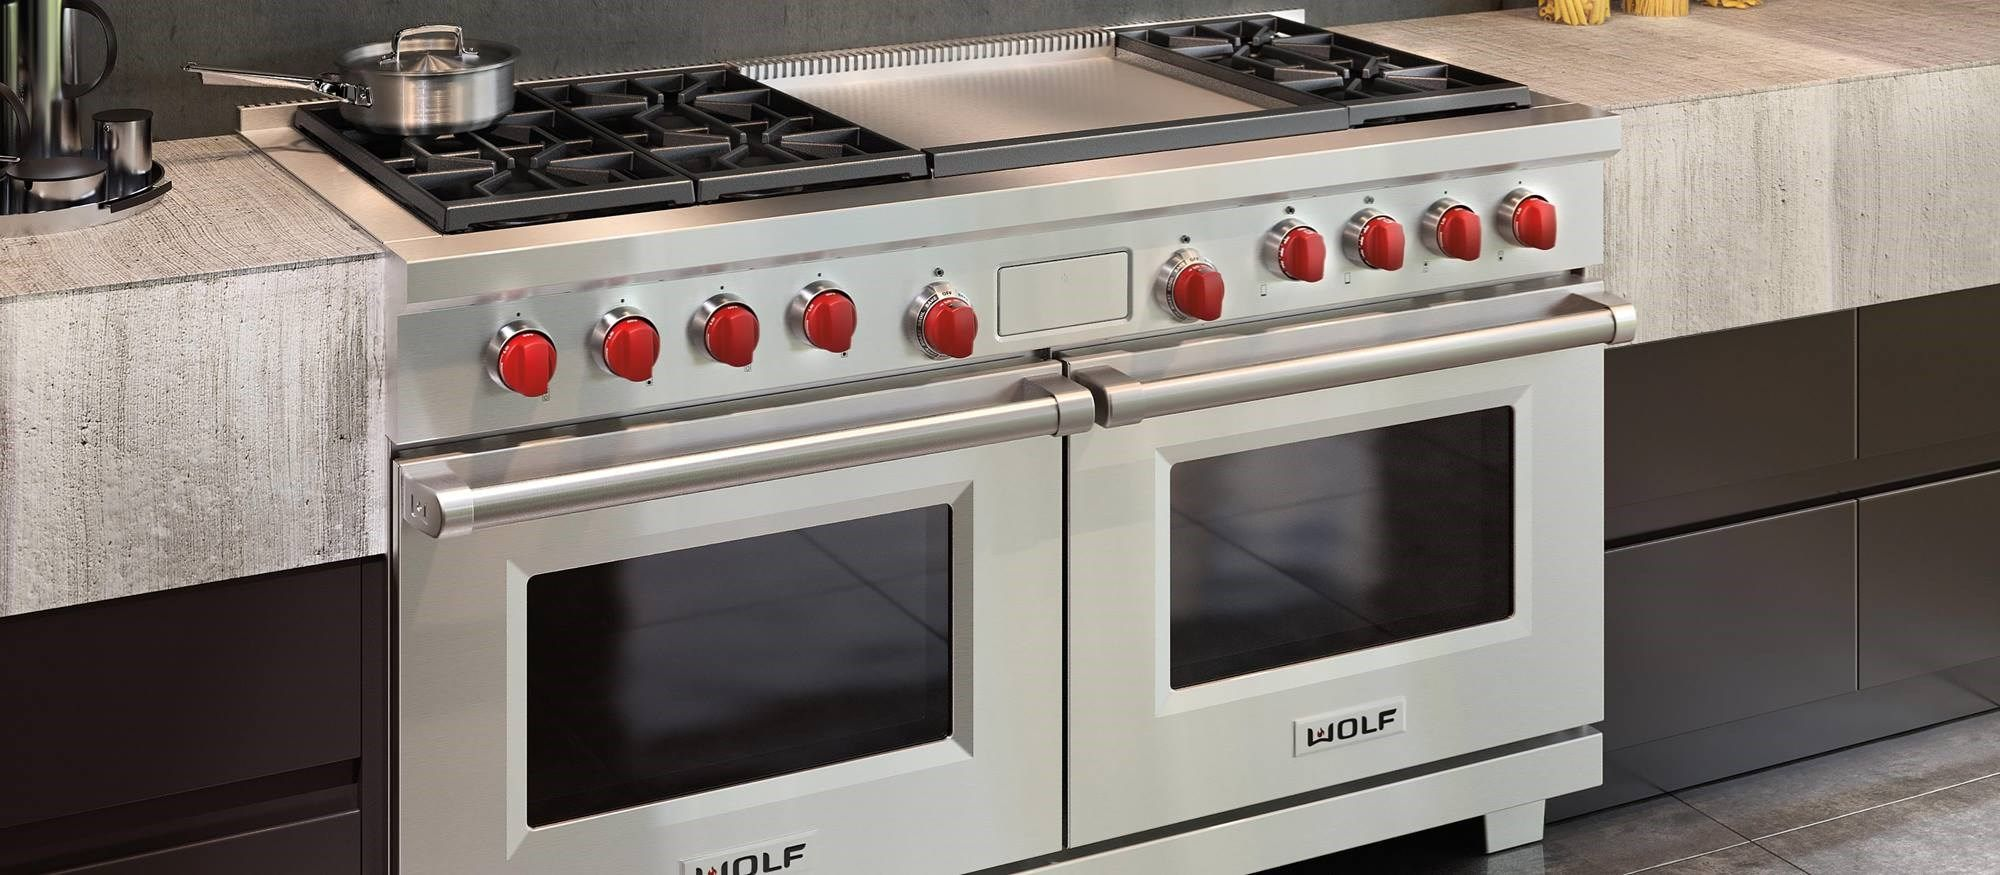 Wolf 60 Dual Fuel Range 6 Burner Infrared Dual Griddle Dual Fuel Ranges Kitchen Style Pots And Pans